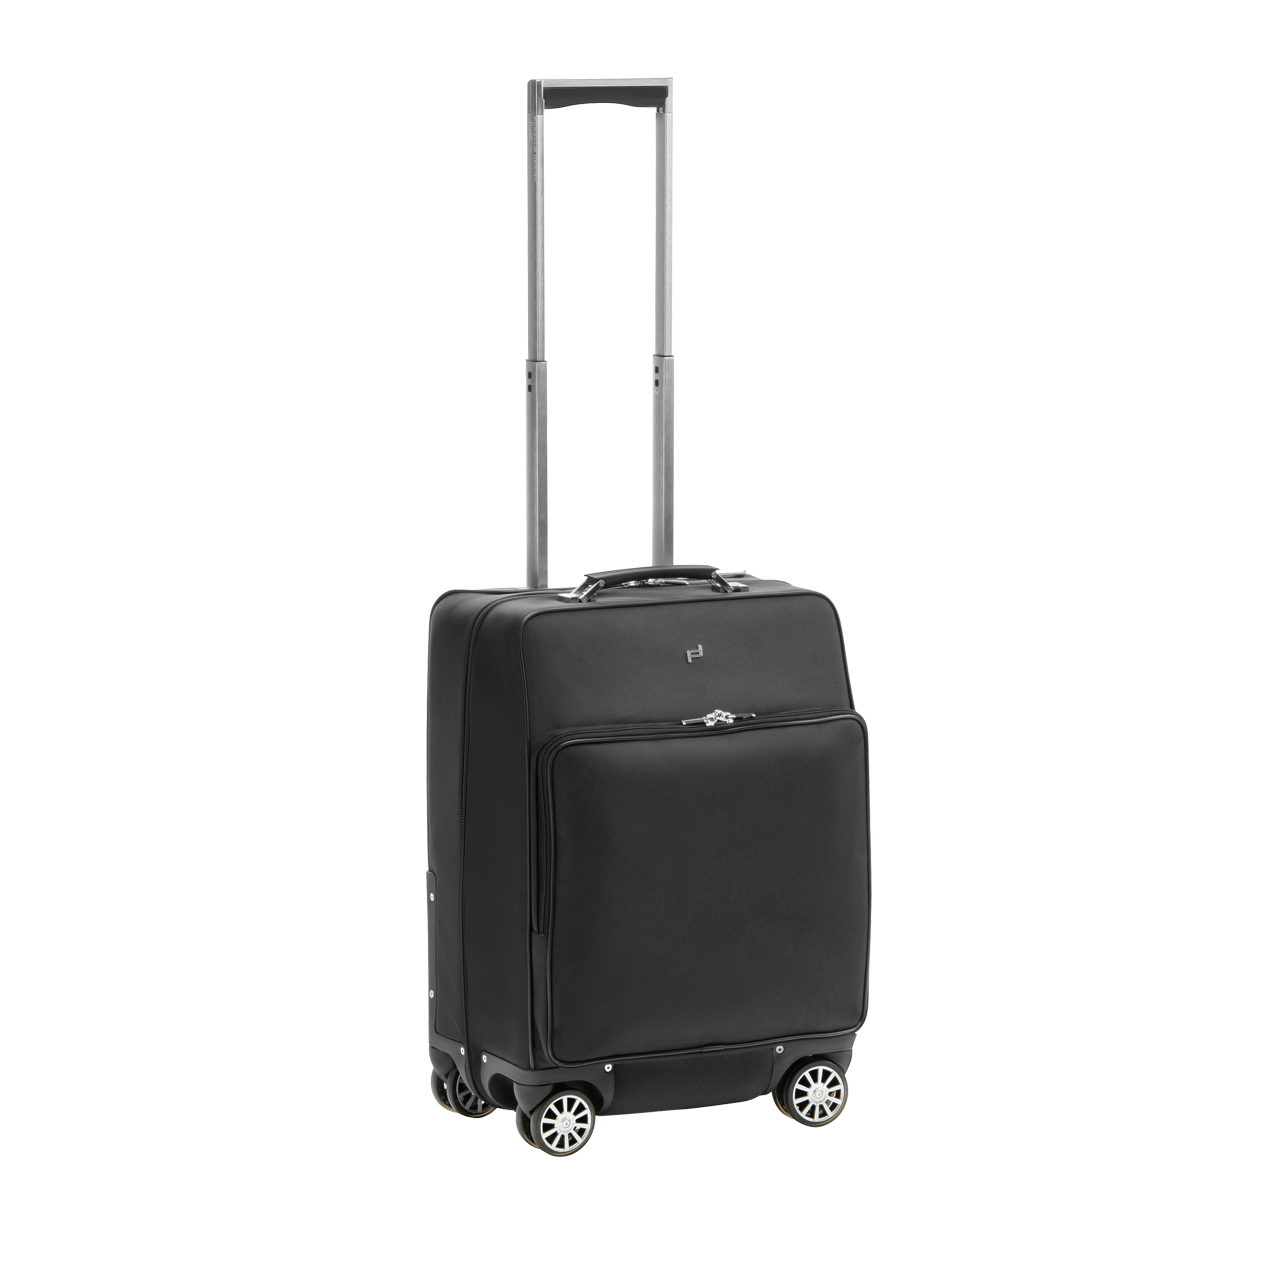 ROADSTER SOFTCASE SERIES TROLLEY 550 4W - фото 1